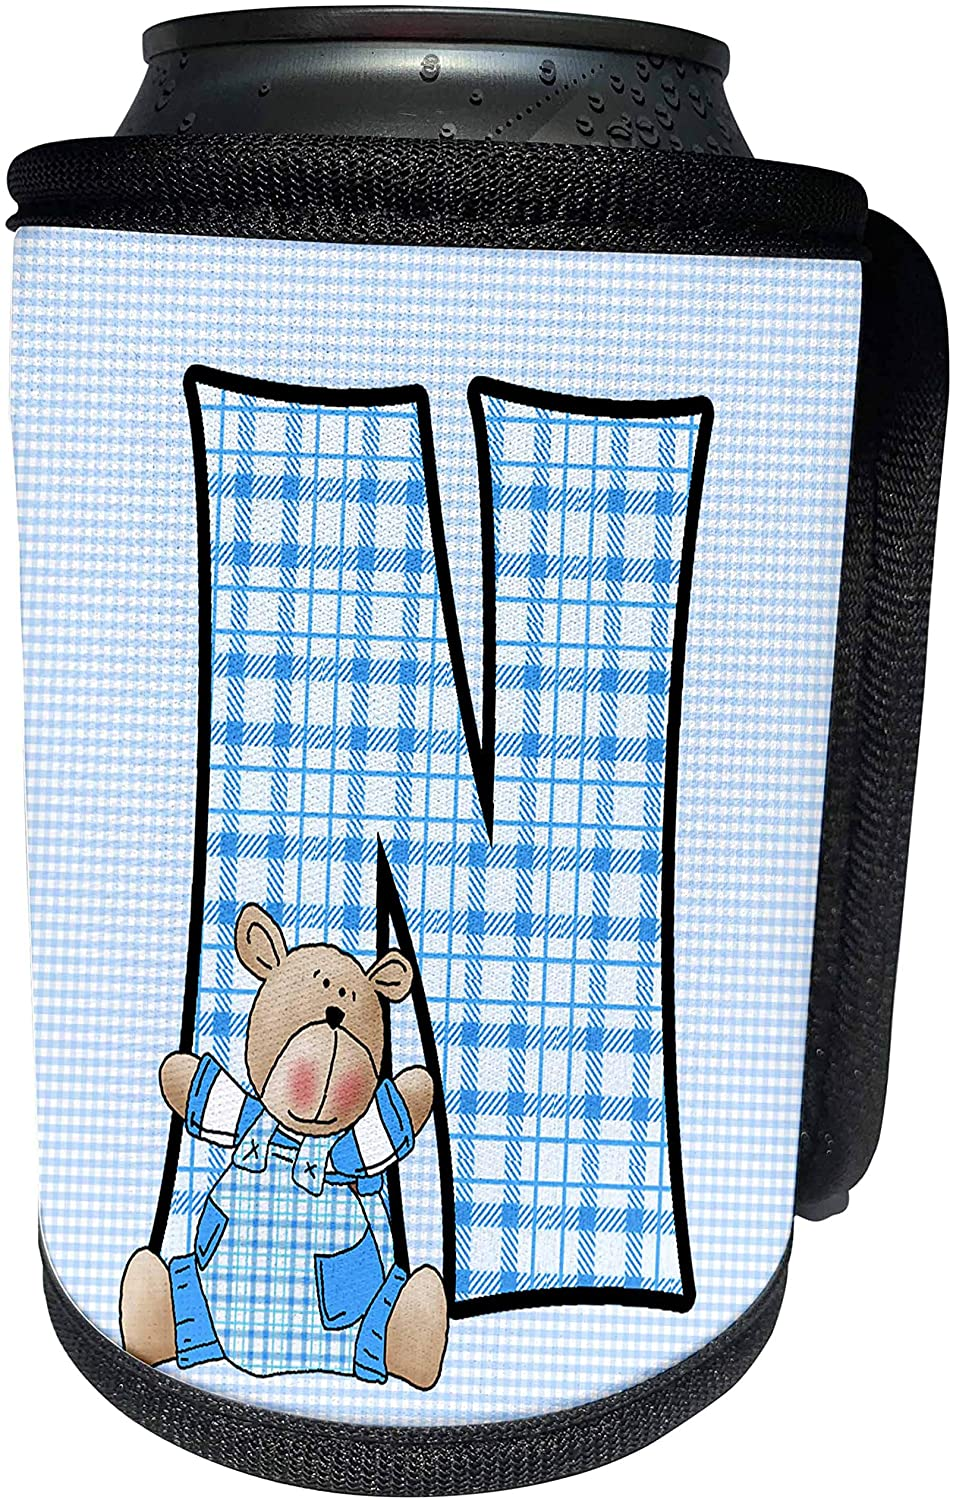 3dRose Doreen Erhardt Baby Monograms - Teddy Bear in Blue for Boys Baby and Kids Monogram N in Gingham Prints - Can Cooler Bottle Wrap (cc_62867_1)